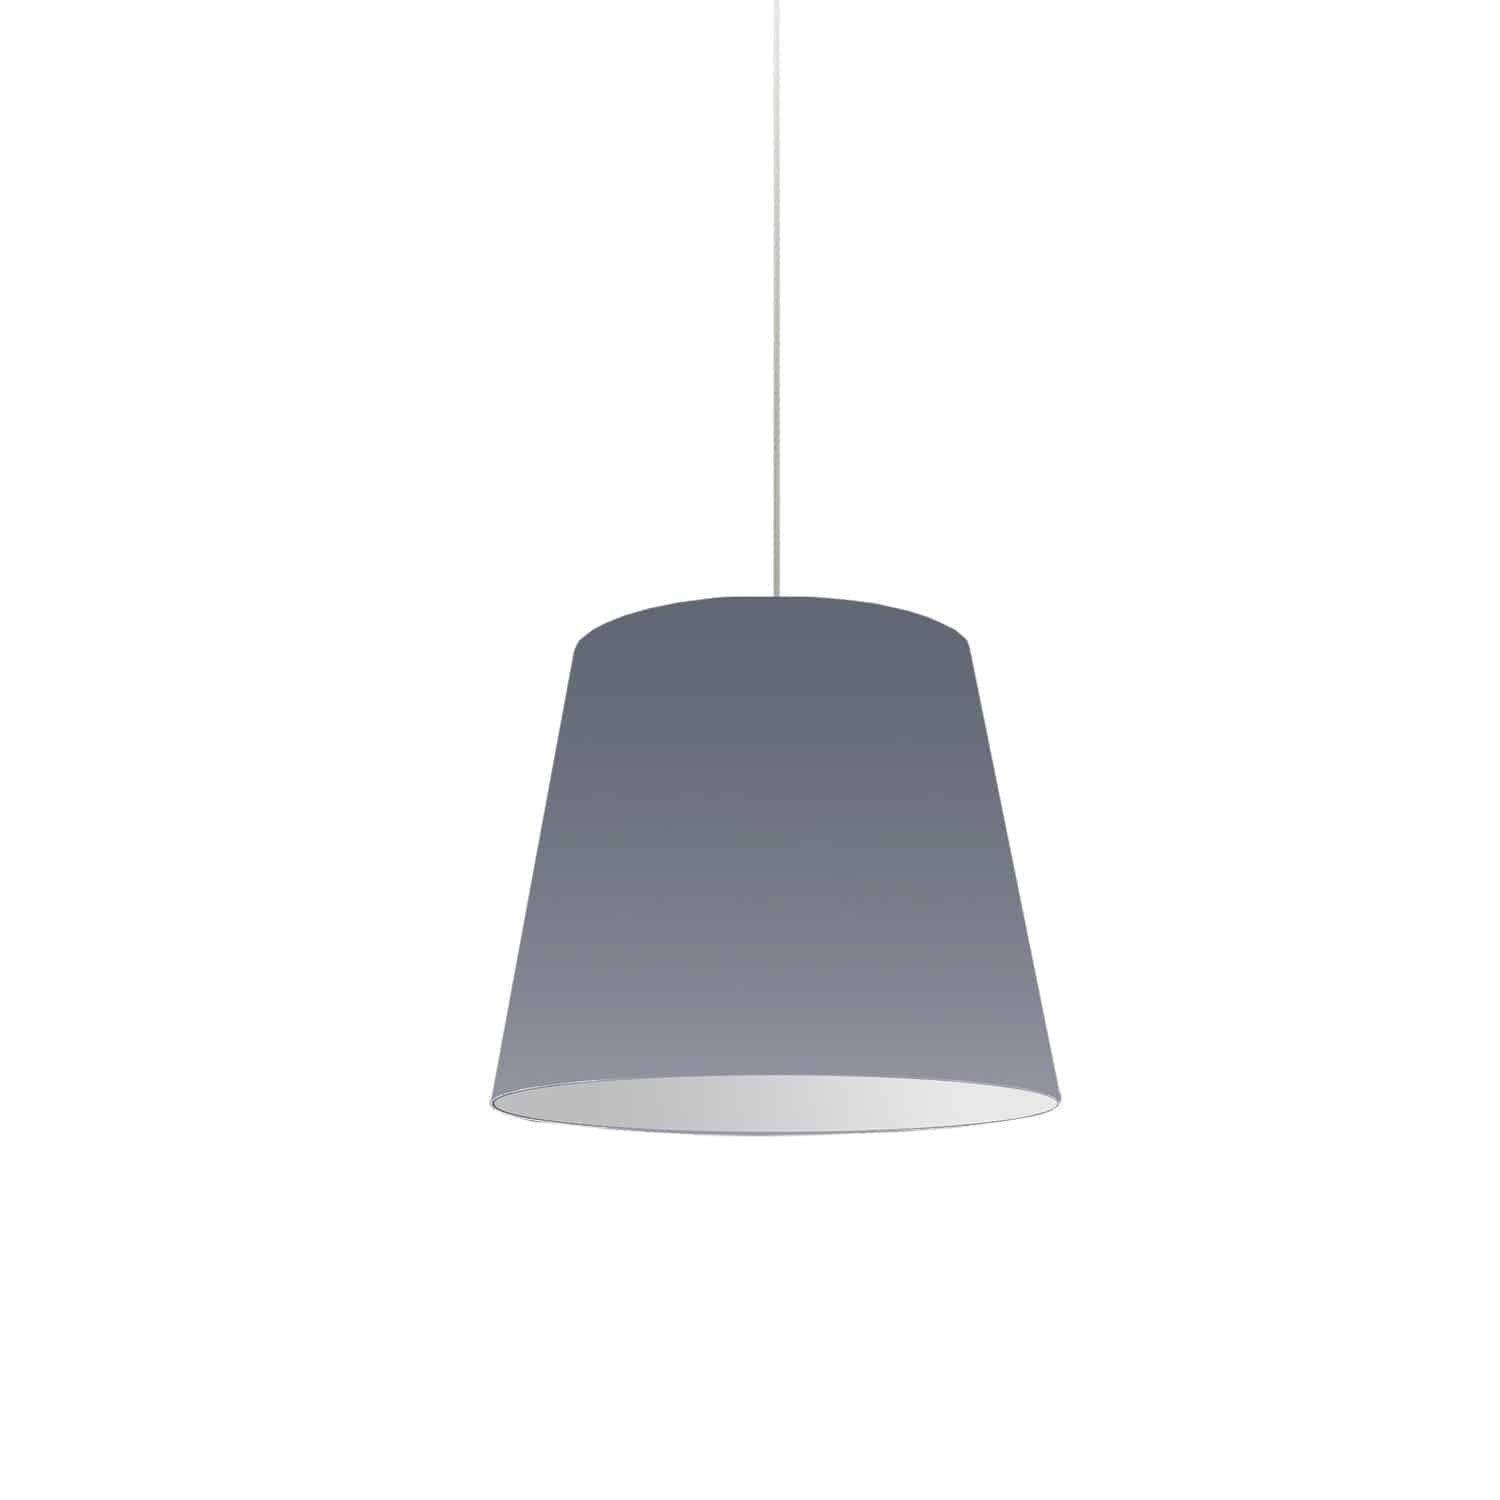 1 Light Oversized Drum Pendant Small Grey Shade